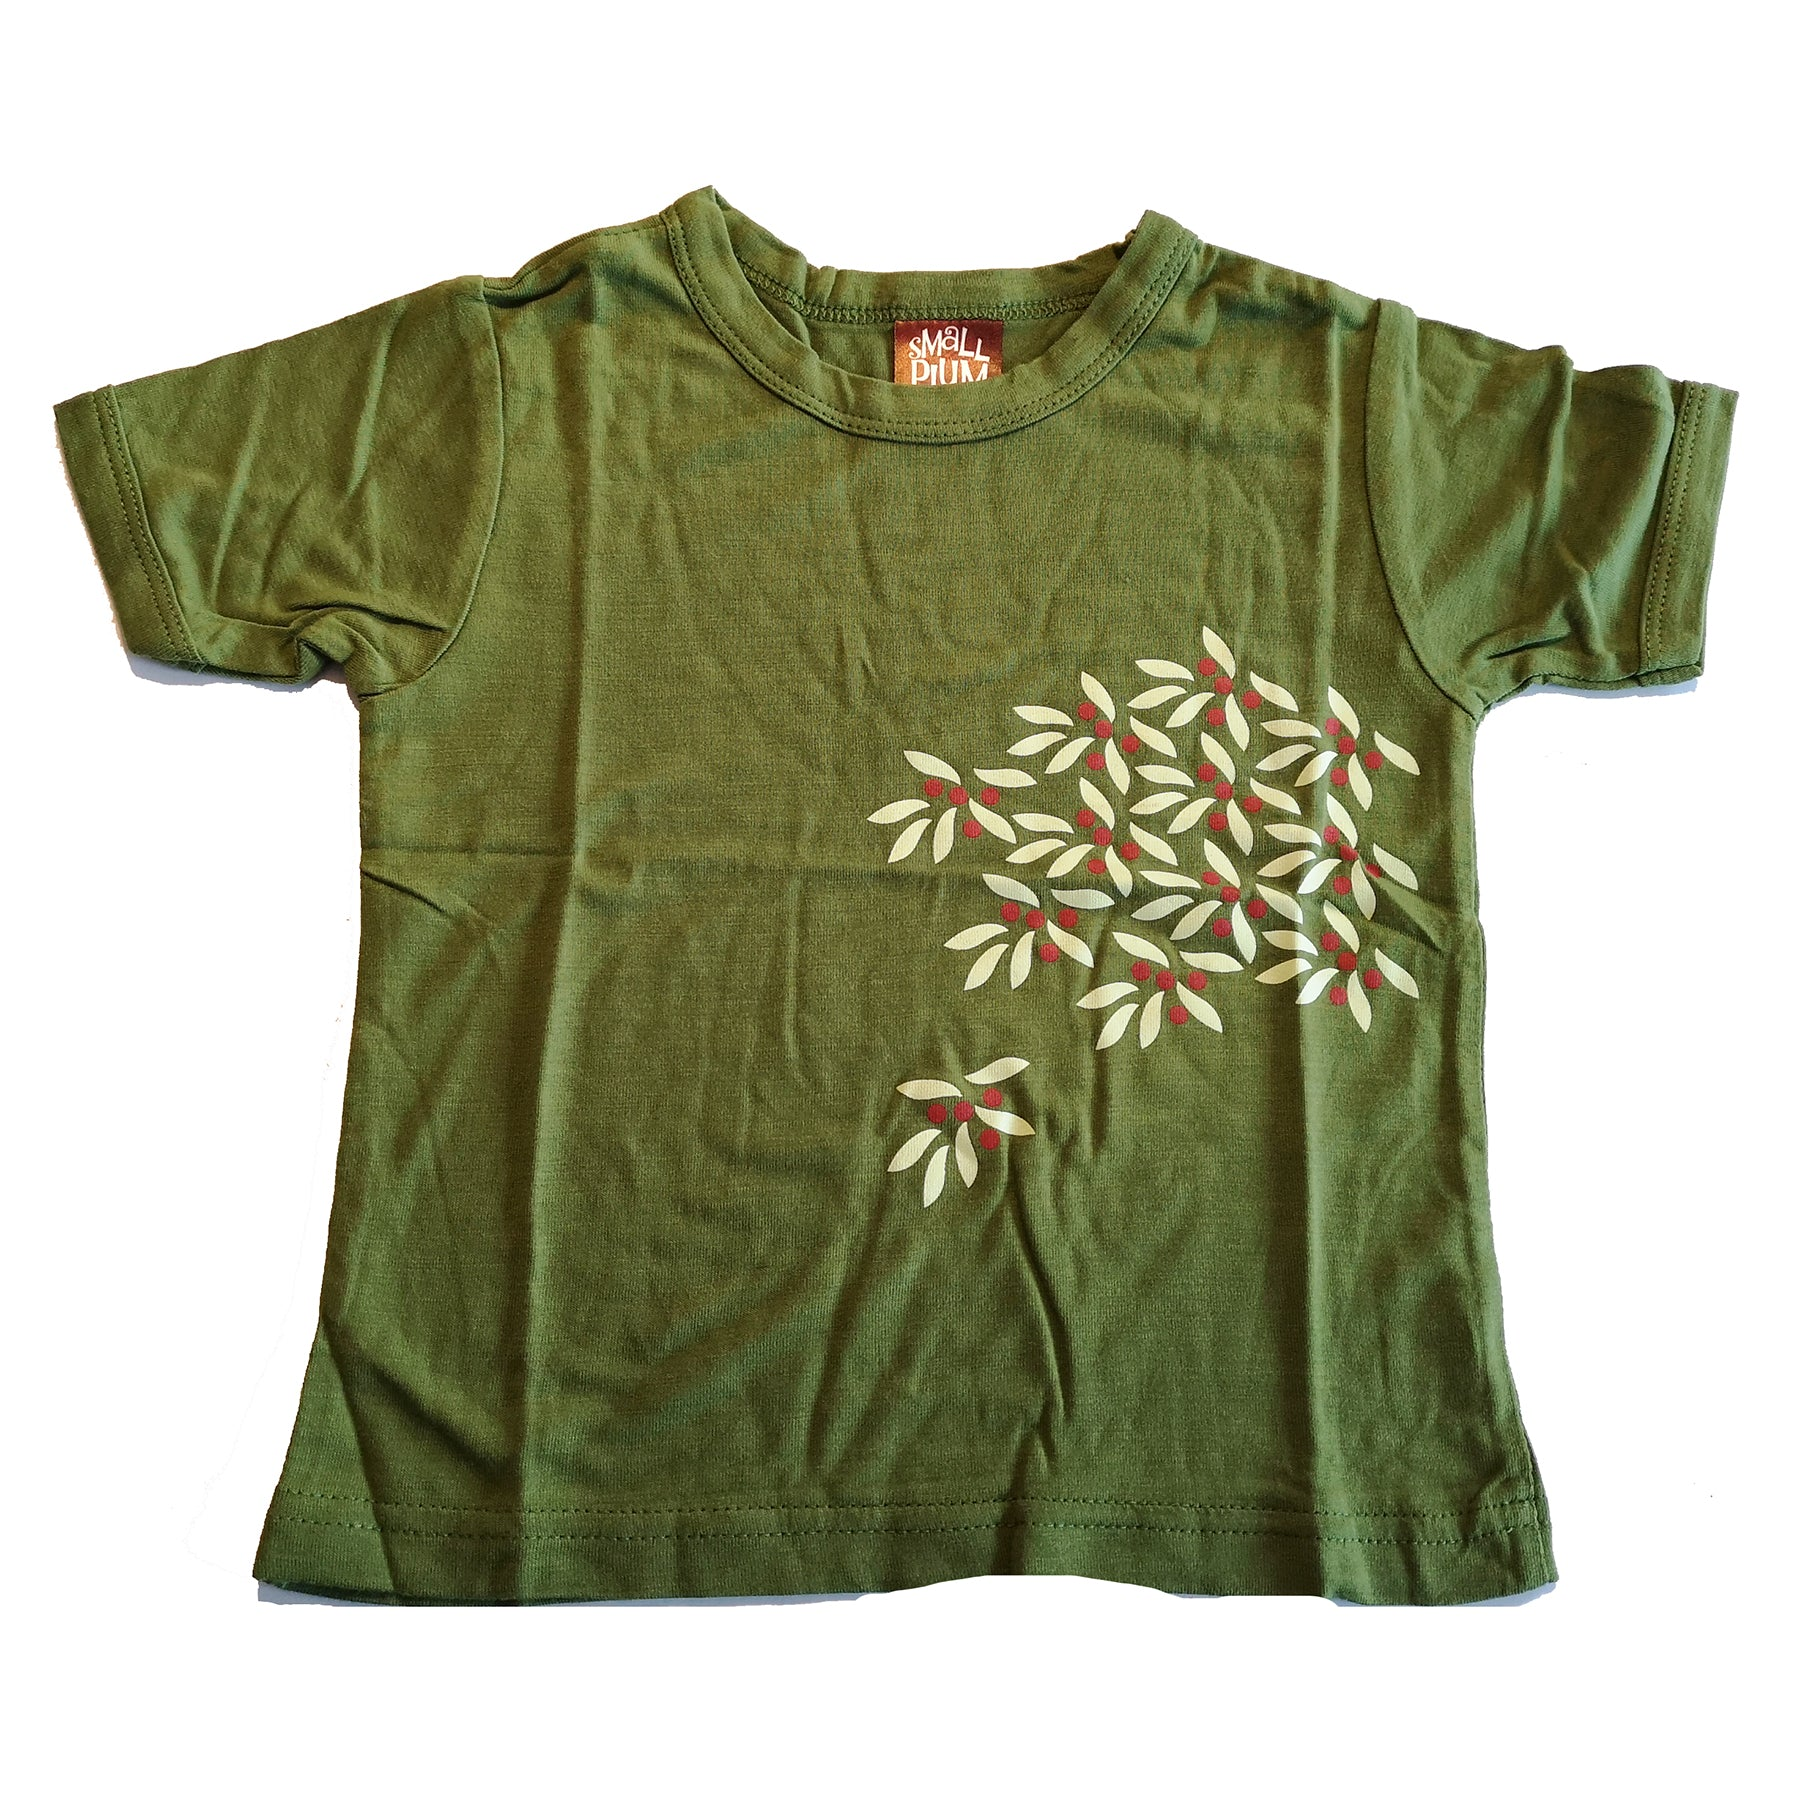 Green Plant Print Tee by Small Plum